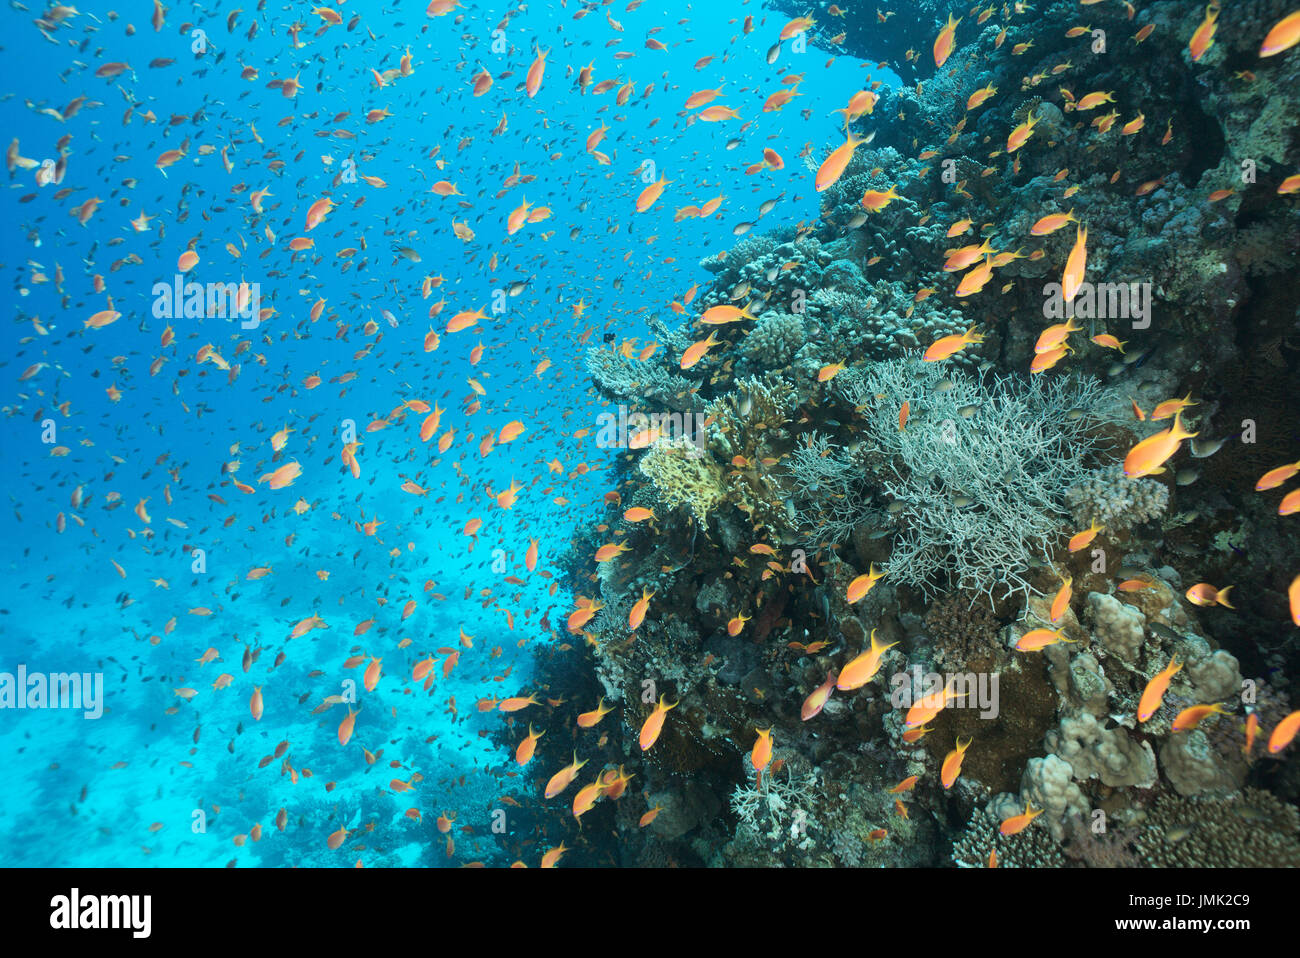 Thousands of red anthias fish at the coral reef in the Red Sea, Egypt. - Stock Image